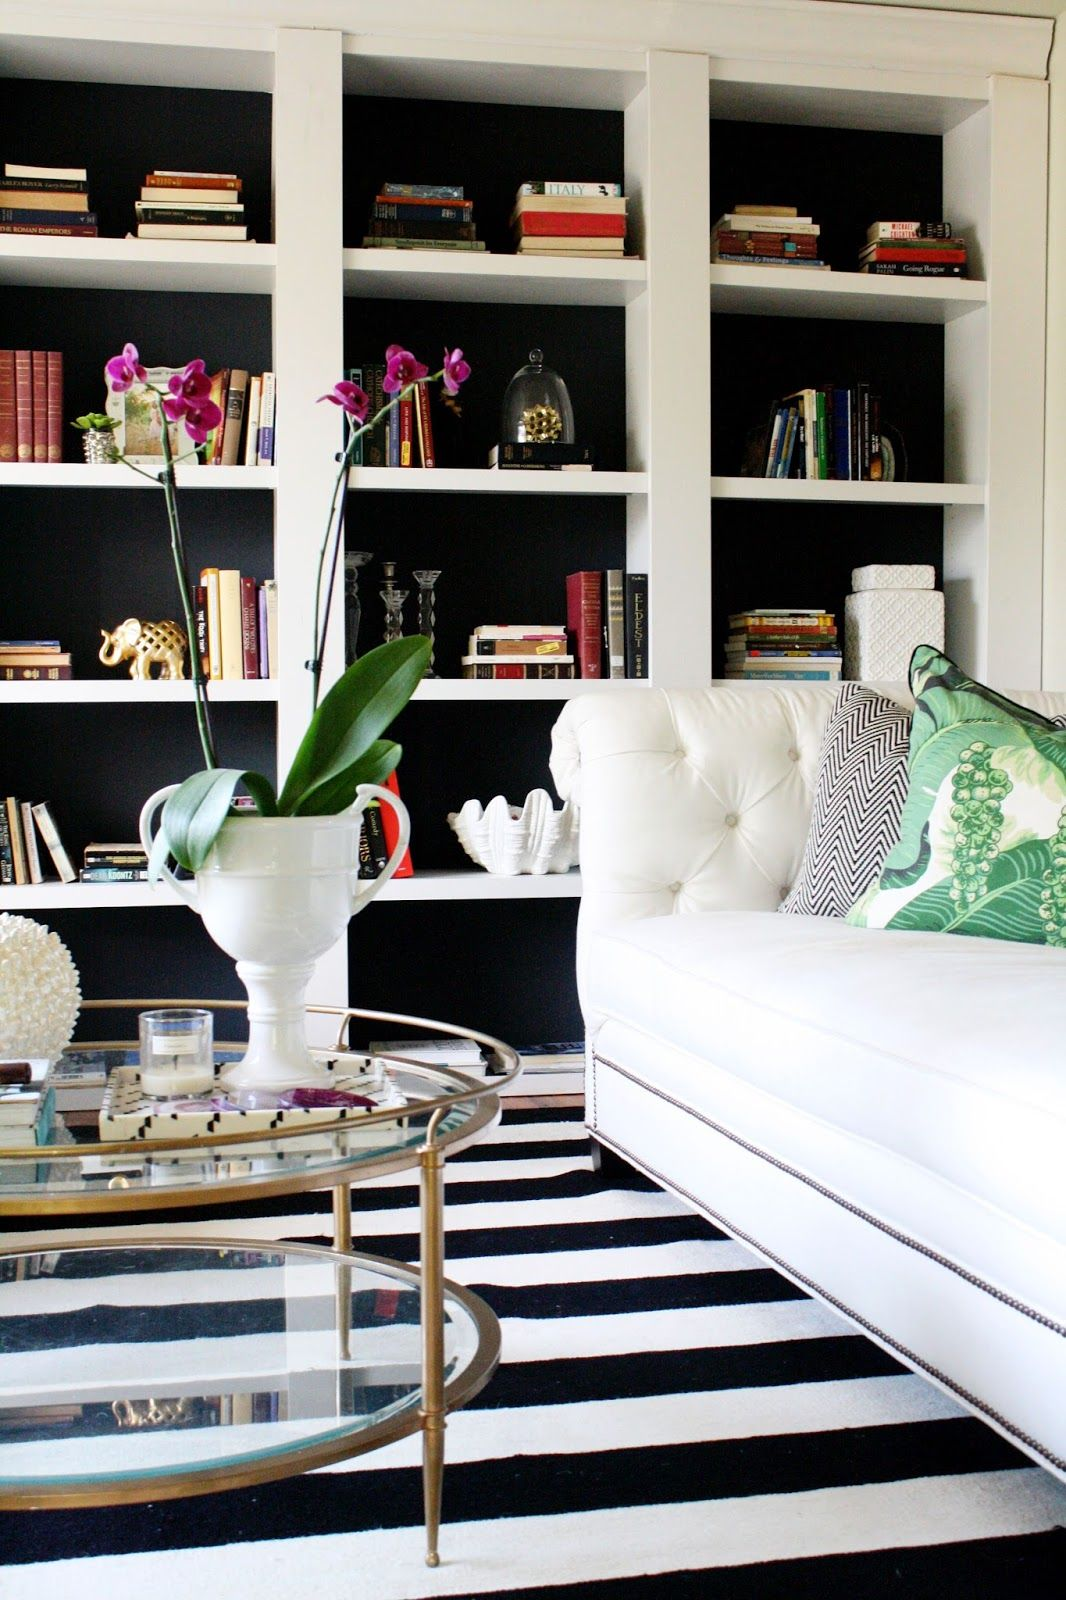 Take Inexpensive Bookcases From Target And Turn Them Into Built Ins. Great  Hack And Tutorial! Black And White Living Room. Love The Striped Rug.